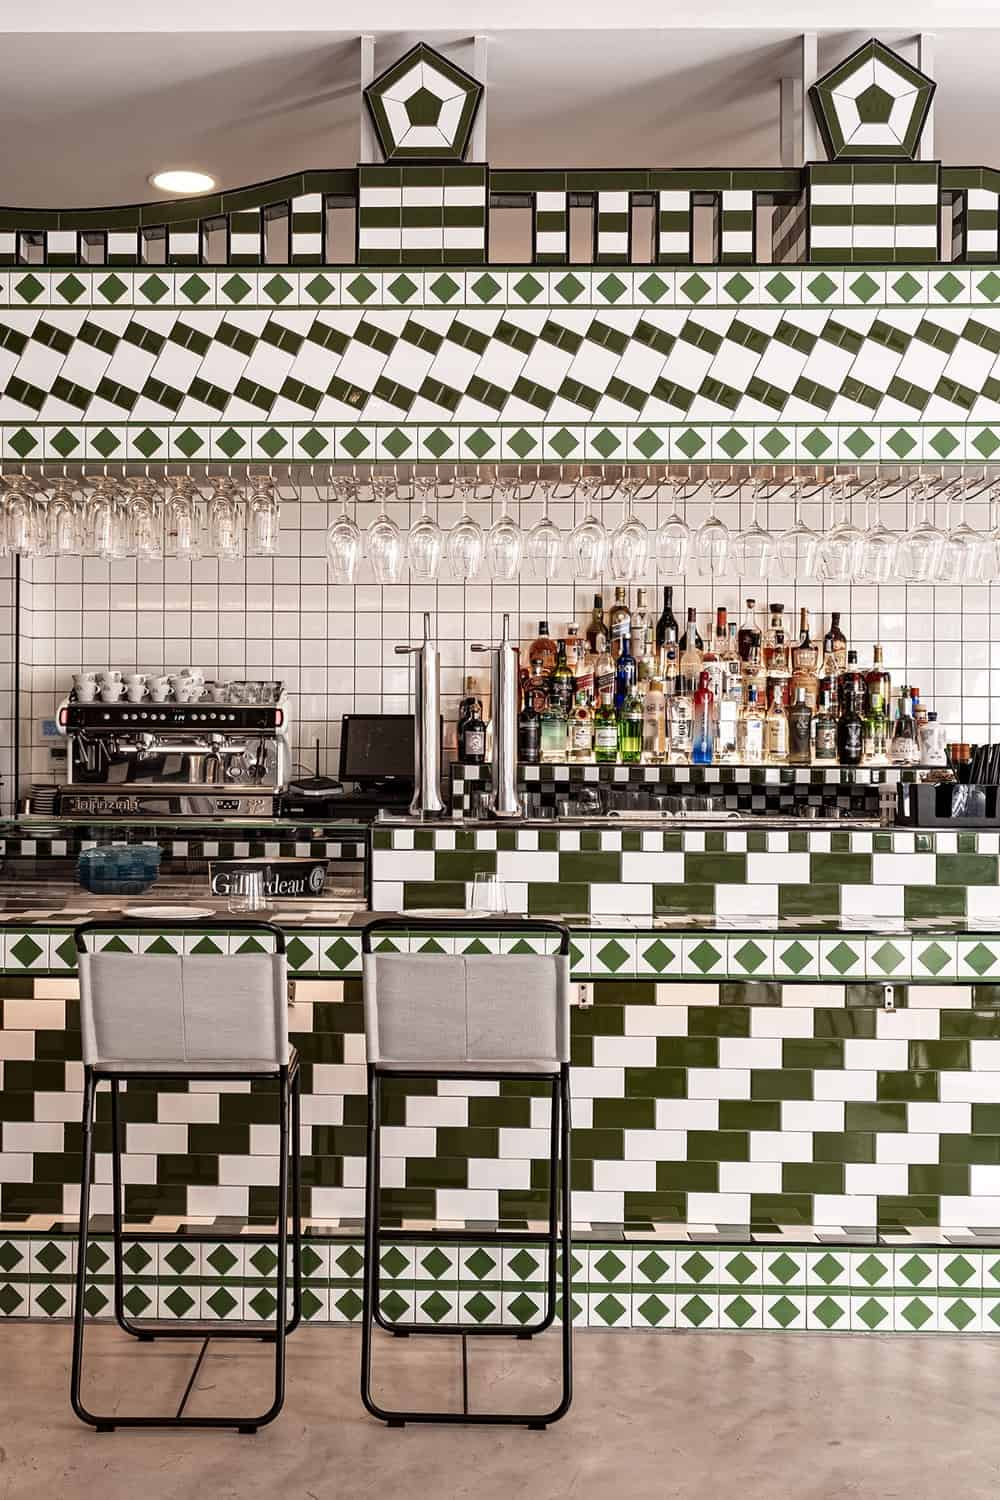 This is a closer view of the bar and its view of the kitchen topped with green checkered to match the bar.